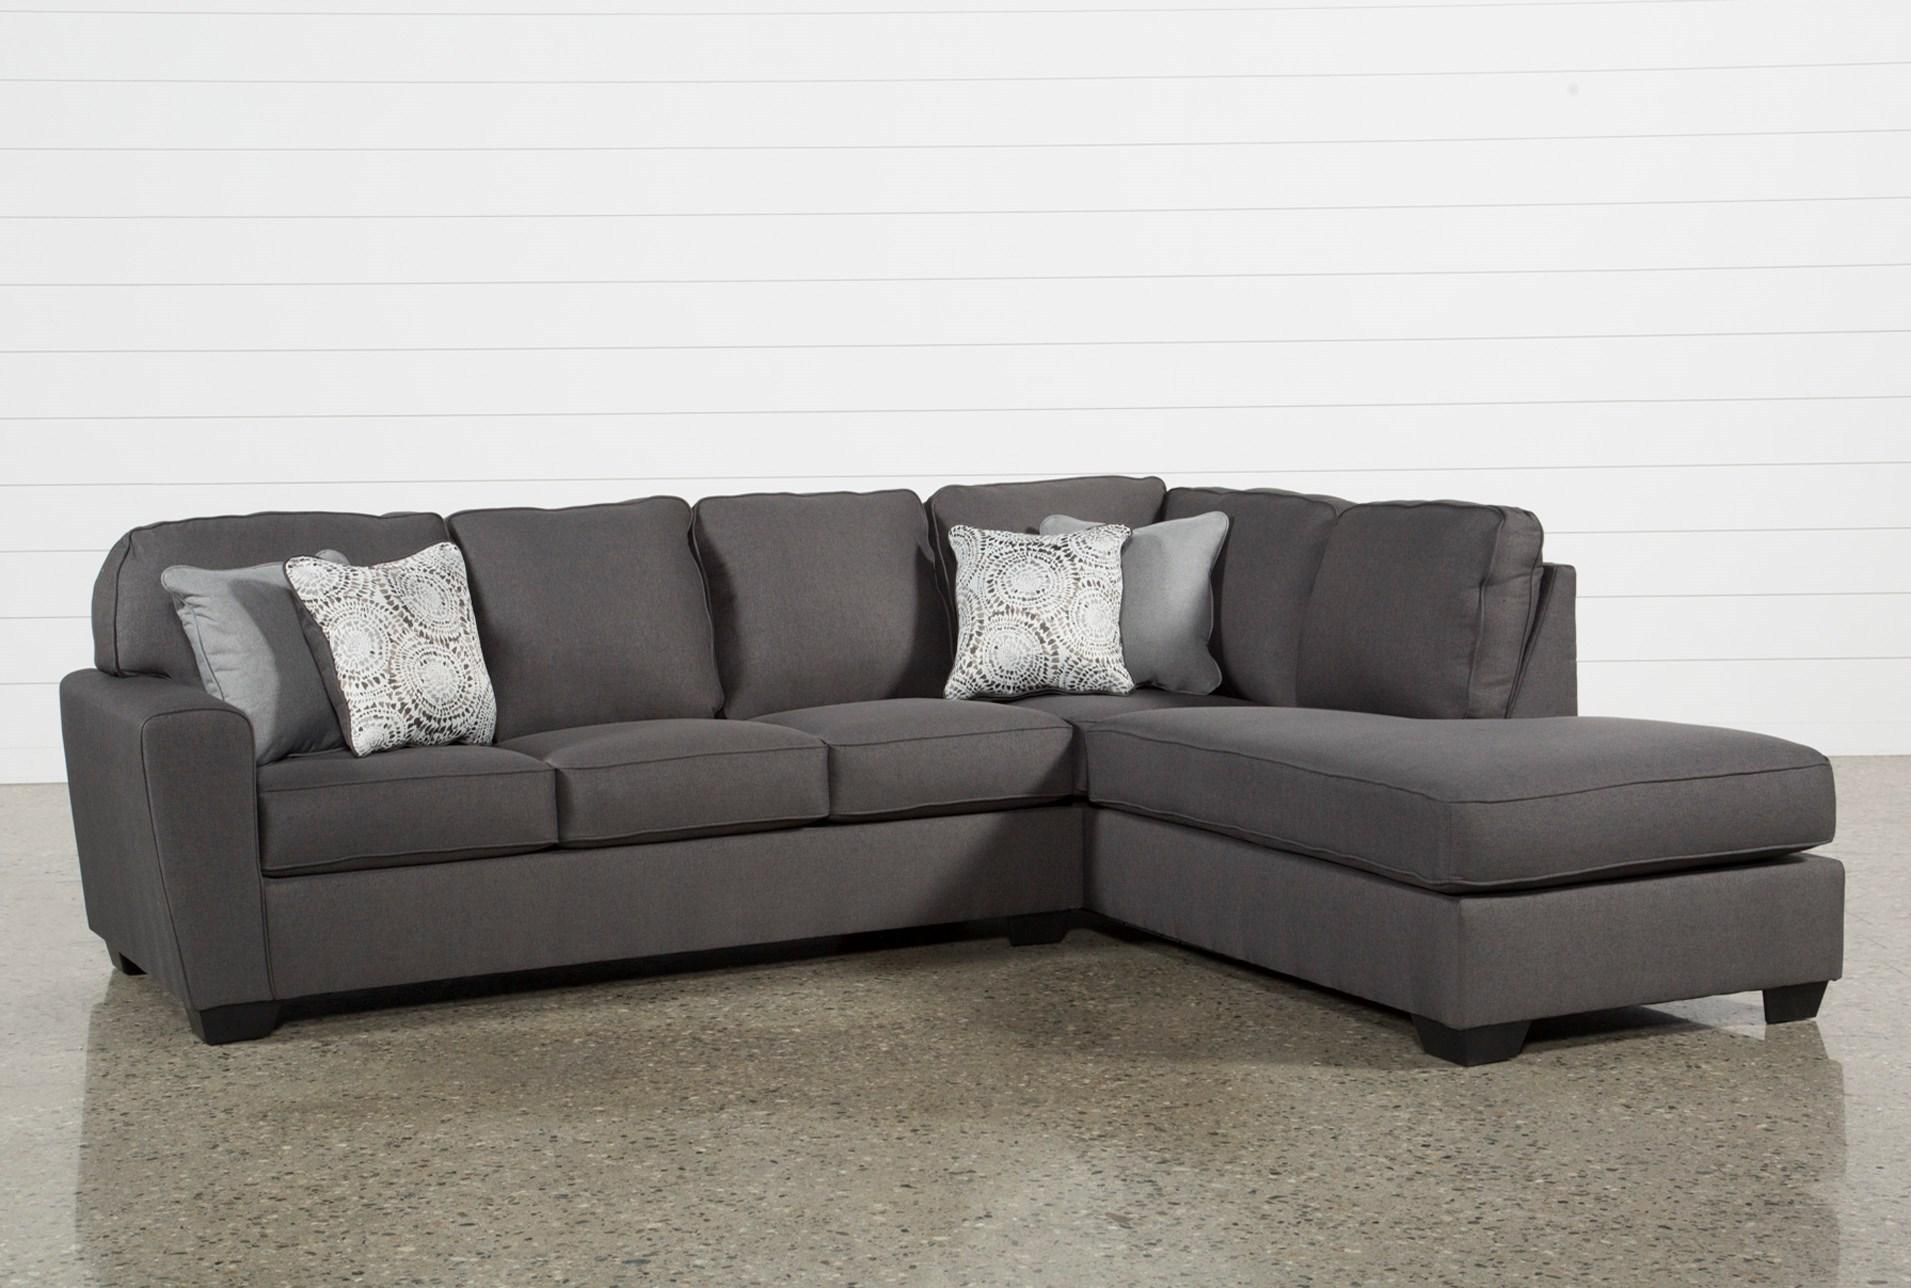 Mcdade Graphite 2 Piece Sectional W/raf Chaise | Livingroom within Cohen Down 2 Piece Sectionals (Image 23 of 30)